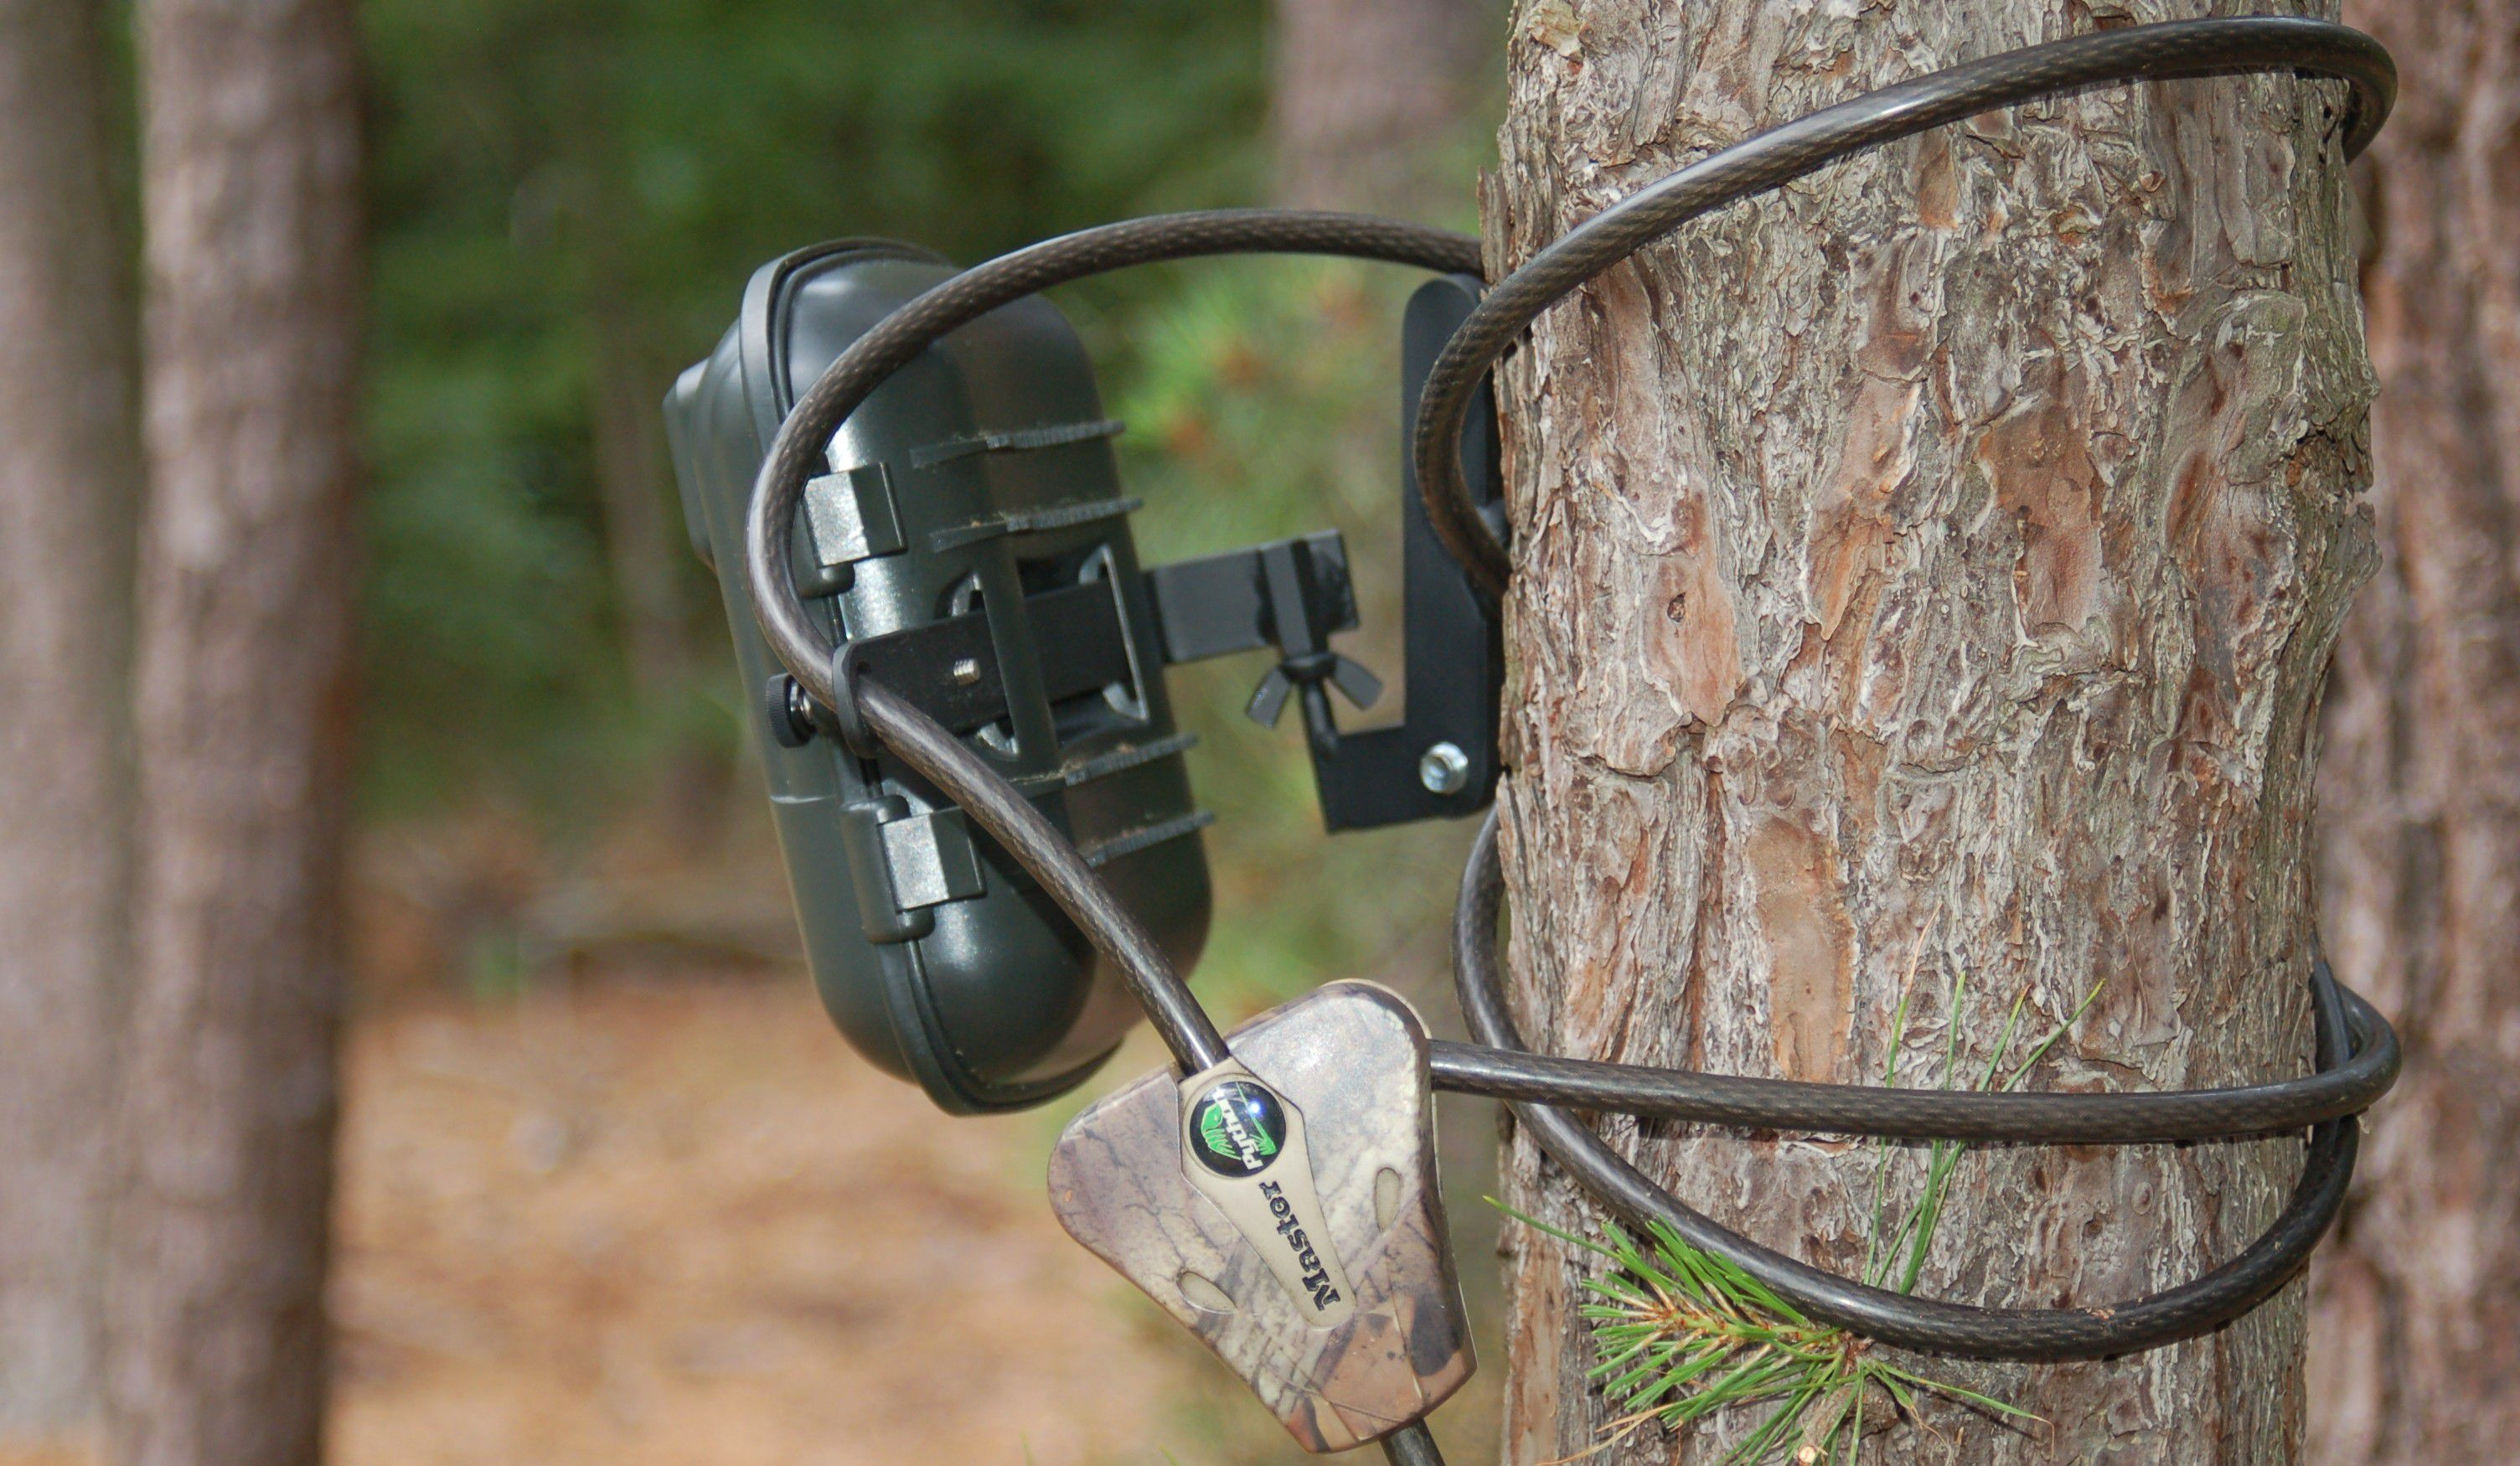 How To Use The Trail Camera